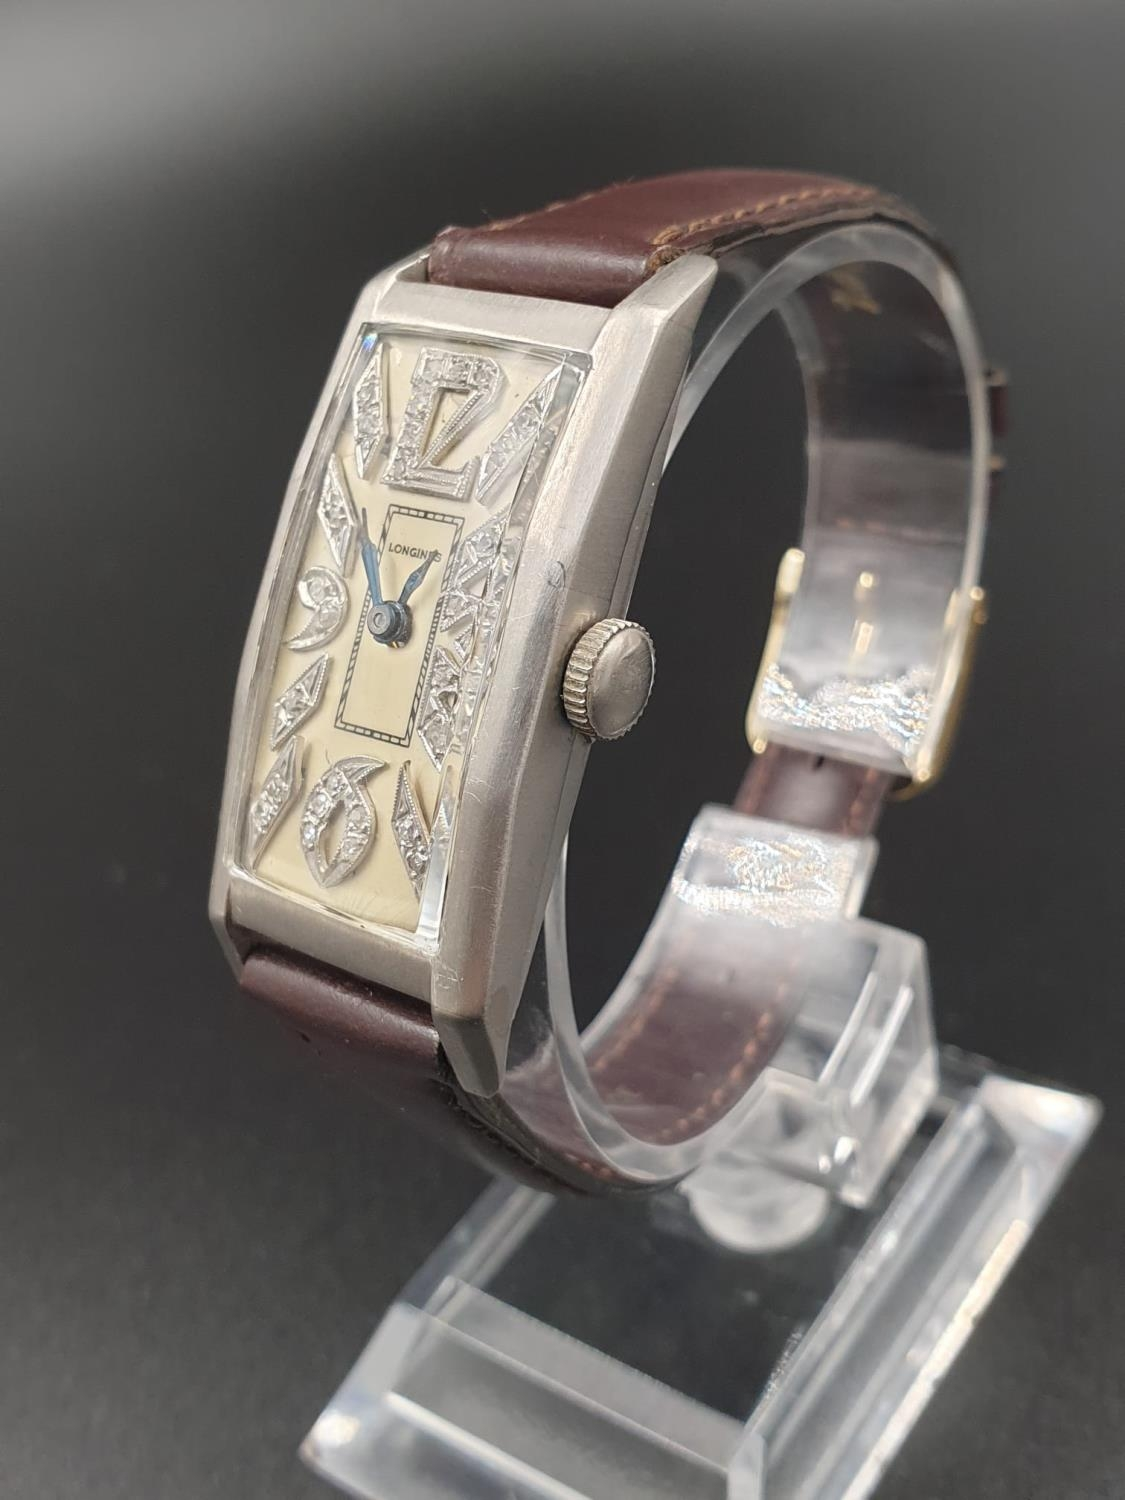 A PLATINUM LONGINES WRIST WATCH WITH DIAMOND NUMBERS. 20mm manual movement. - Image 2 of 9